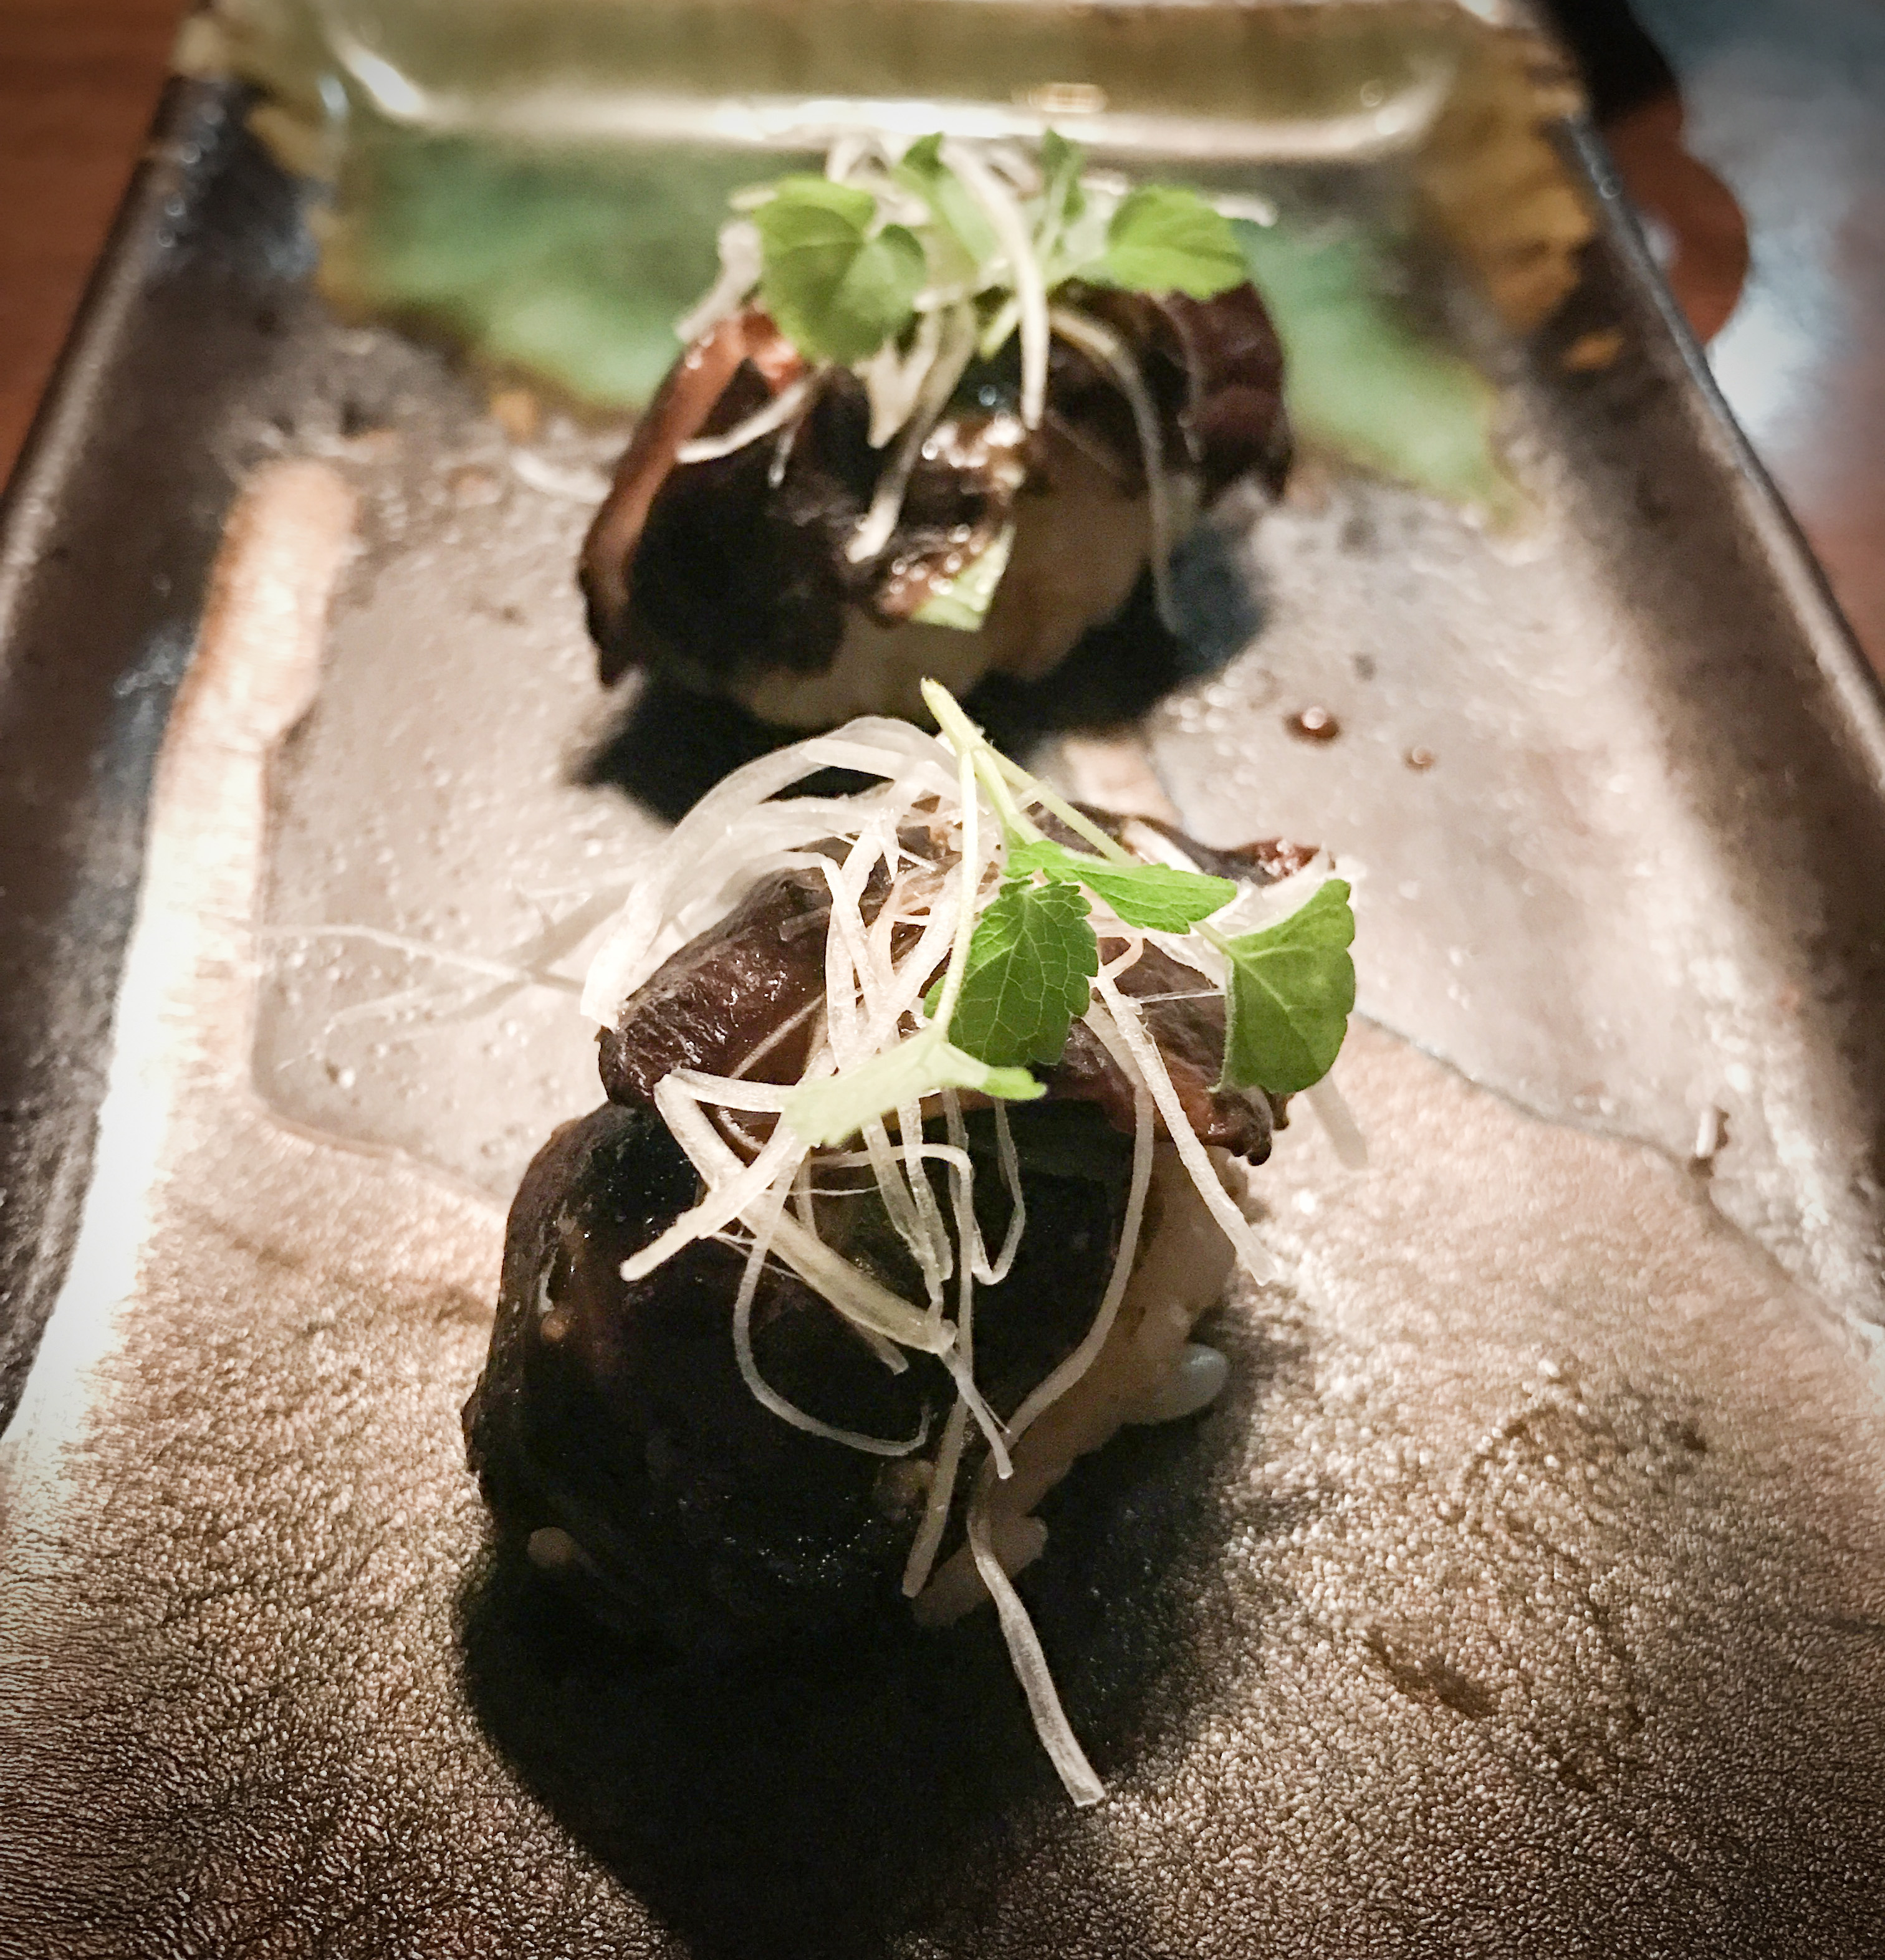 The vegetarian nigiri are some of my favorite dishes on the menu and the warm braised hana shiitake mushrooms with anise hyssop and truffled honey was no exception.